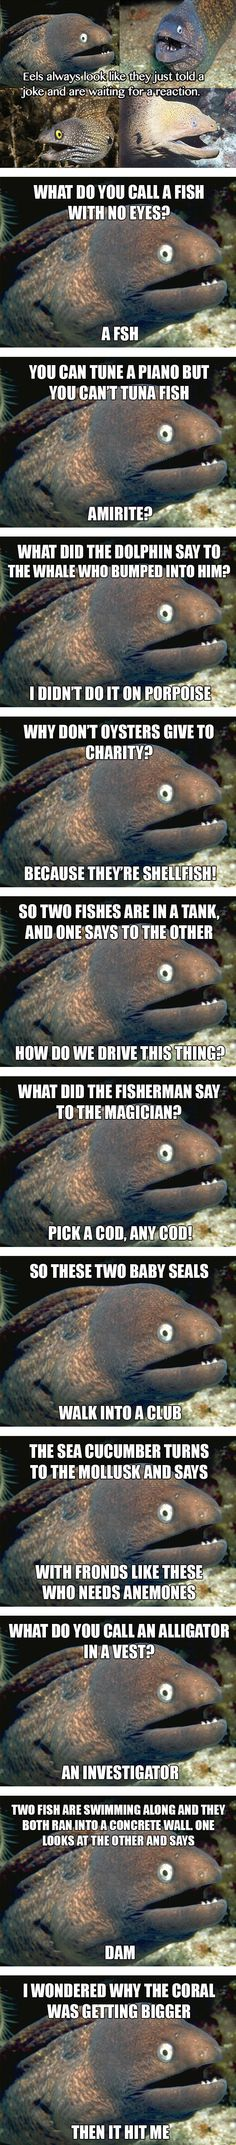 The best of Bad Joke Eel  // funny pictures - funny photos - funny images - funny pics - funny quotes - #lol #humor #funnypictures